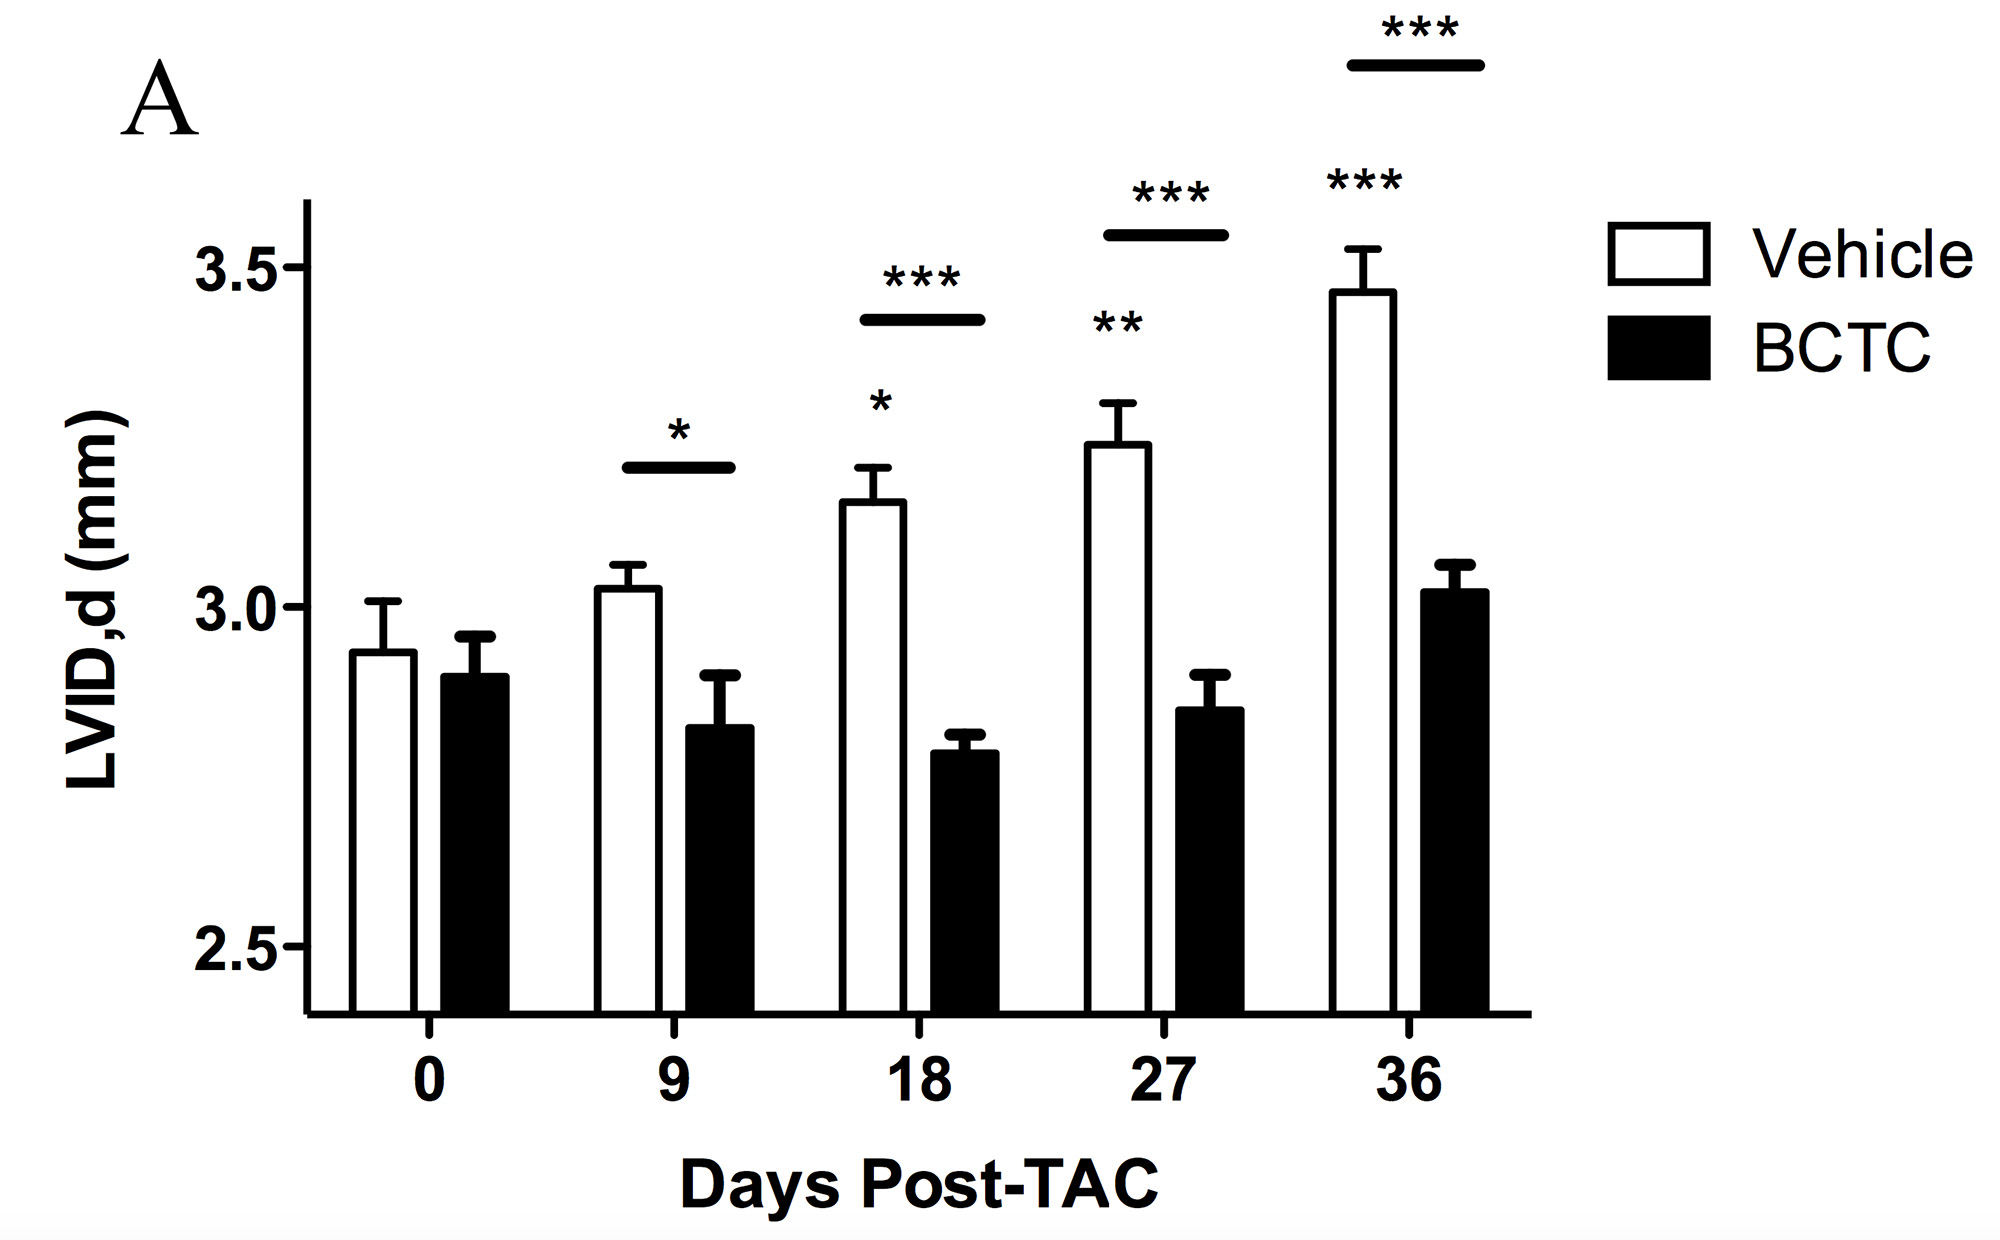 [18] Treating mice with a TRPV1 inhibitor (BCTC)protects the heart from heart failure. In untreated mice, the ventricle dilates (Vehicle).